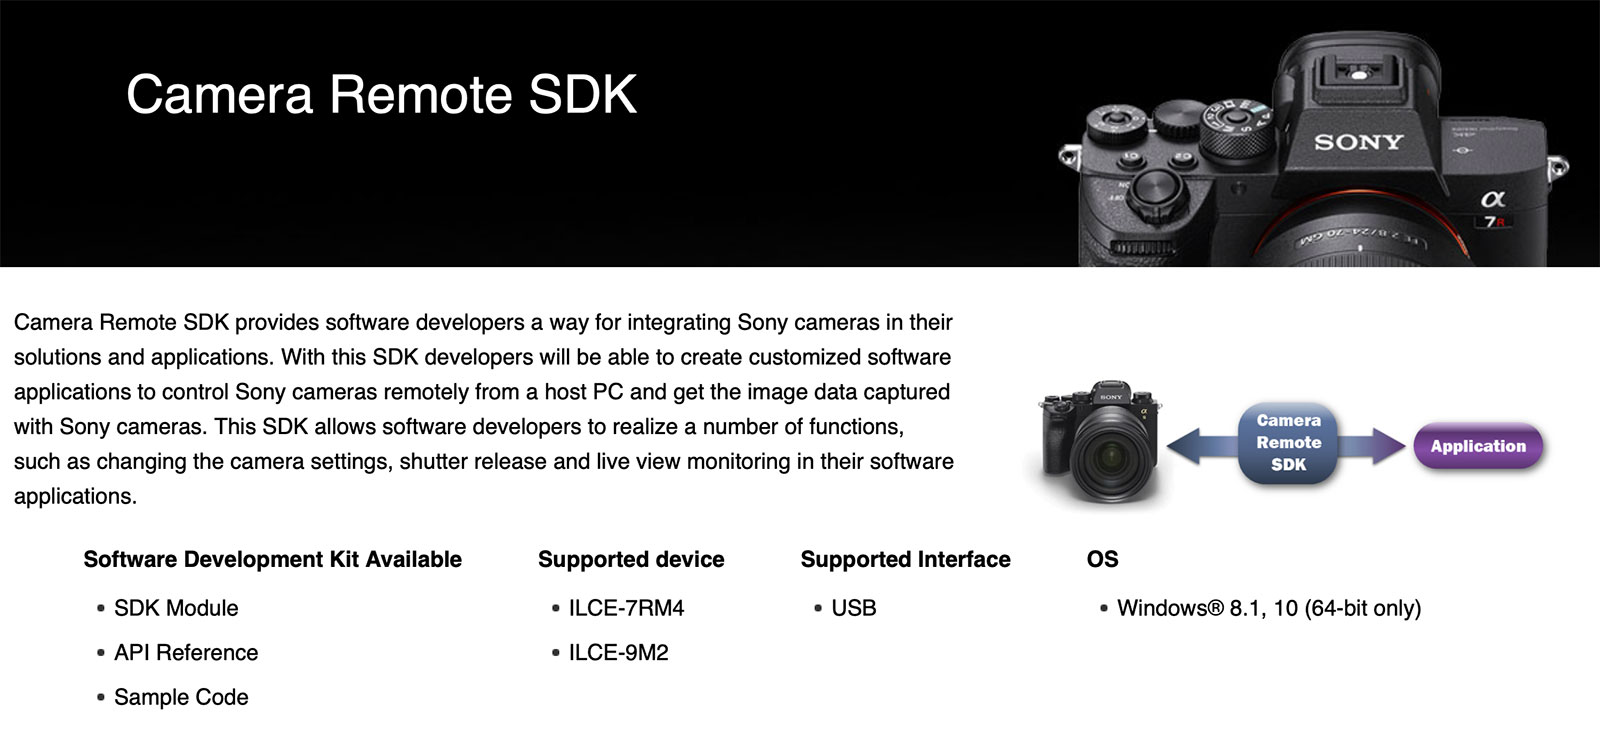 Sony Camera Remote SDK